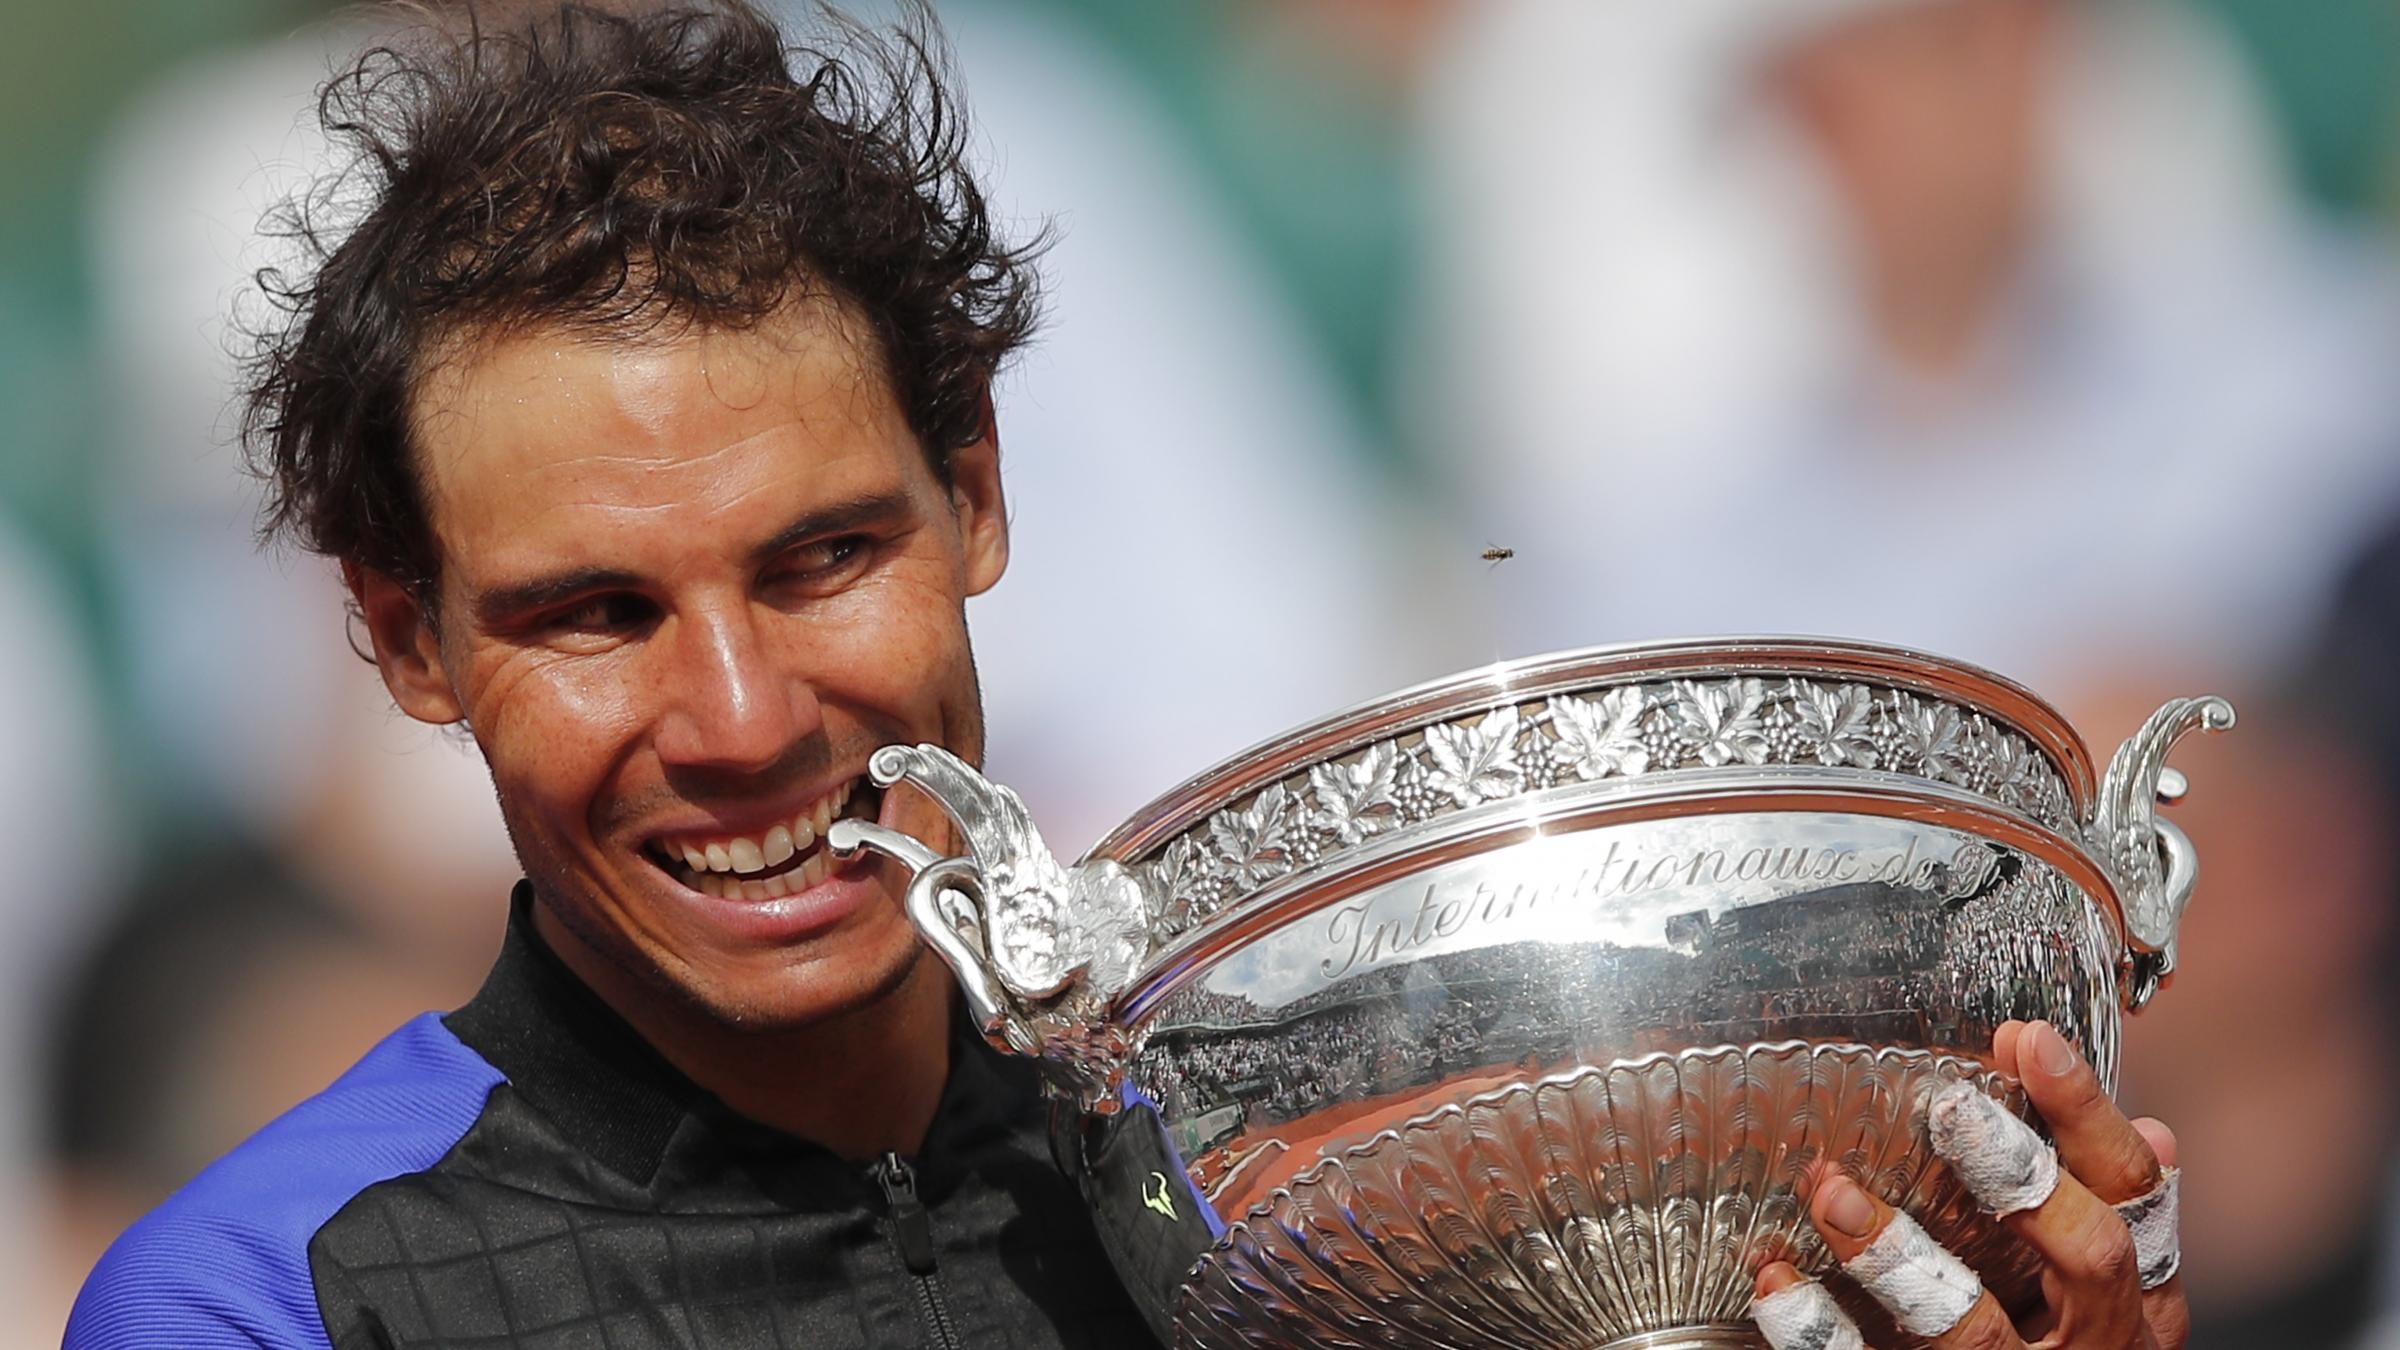 Nadal pulls out of Queen's to rest for Wimbledon